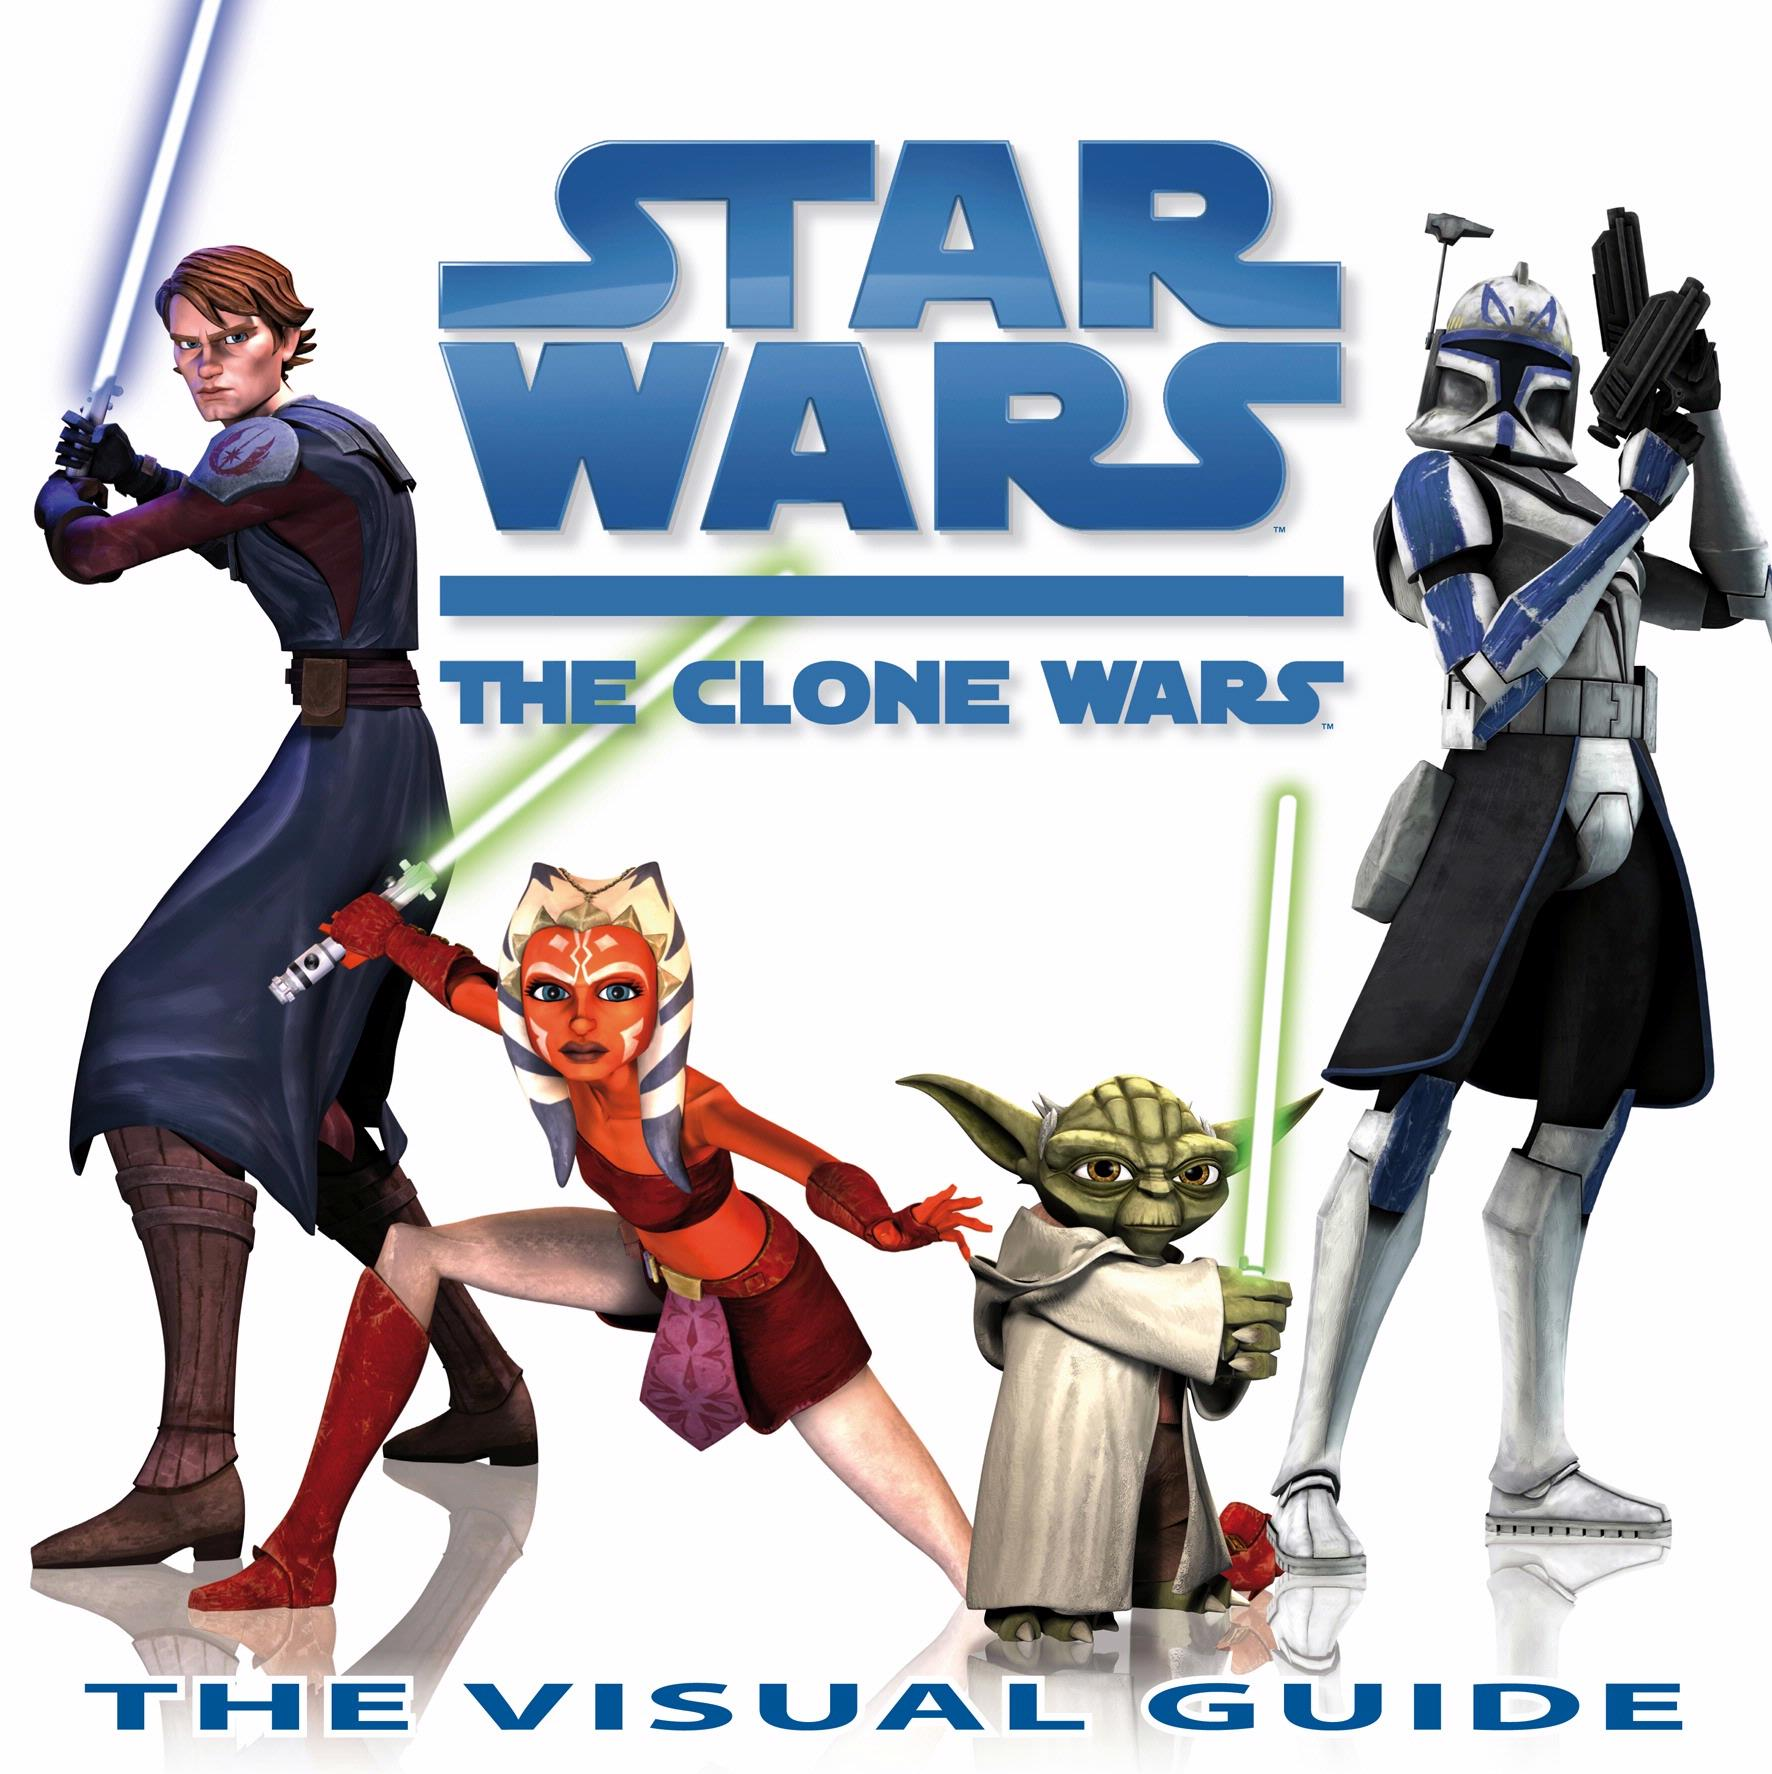 Star Wars The Clone Wars: The Visual Guide